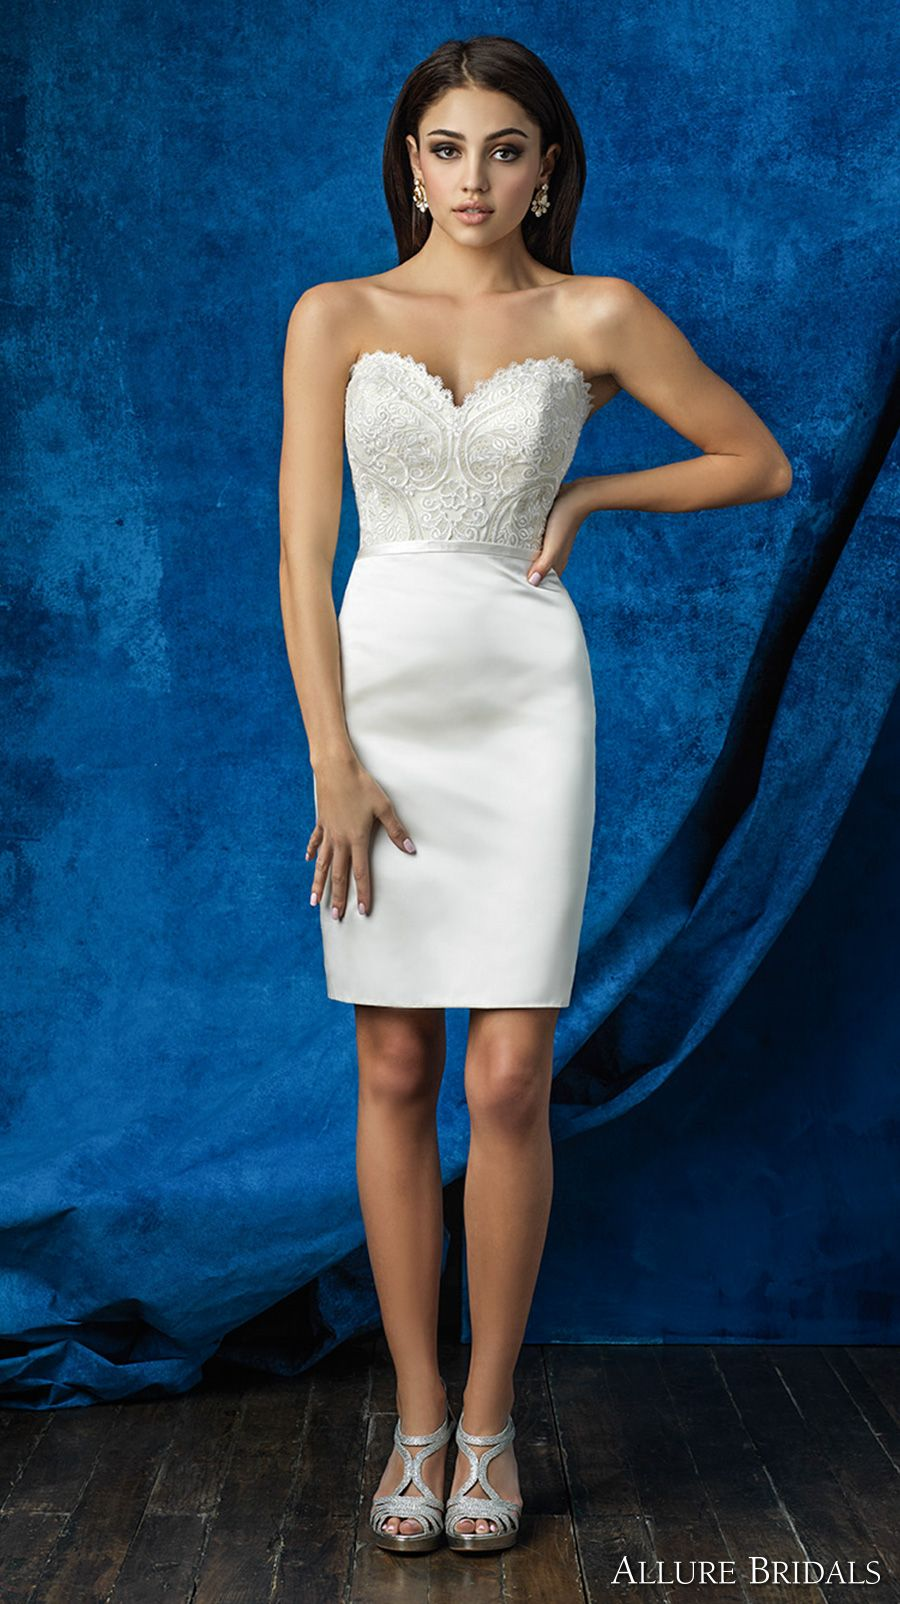 Allure Bridals Mix and Match Collection — Create Gorgeous Custom ...